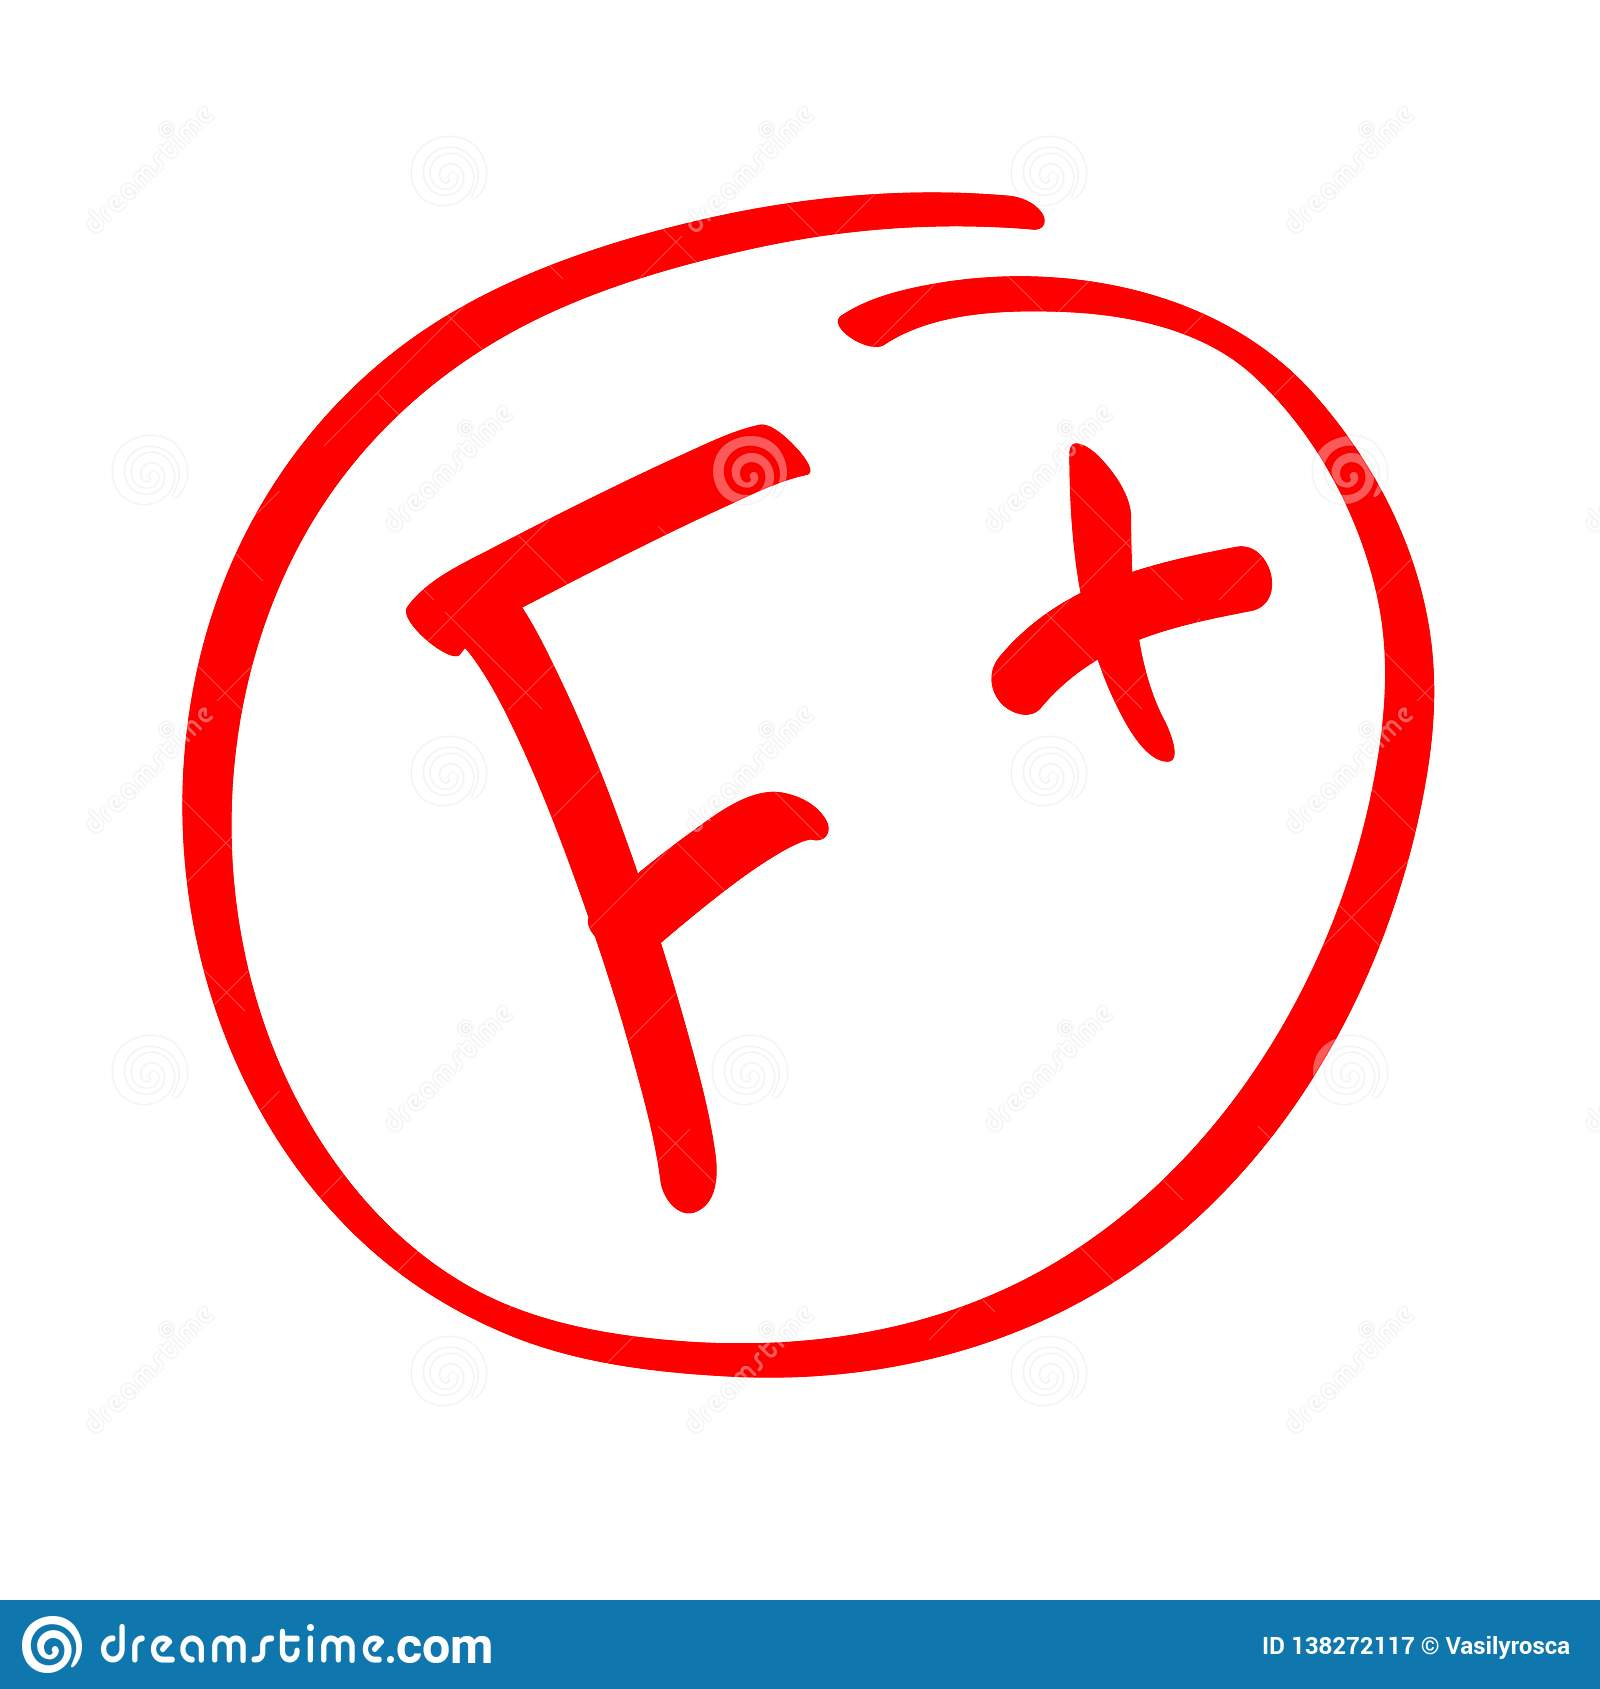 Grade Result F Hand Drawn Vector Grade F In Red Circle Test Exam Mark Report